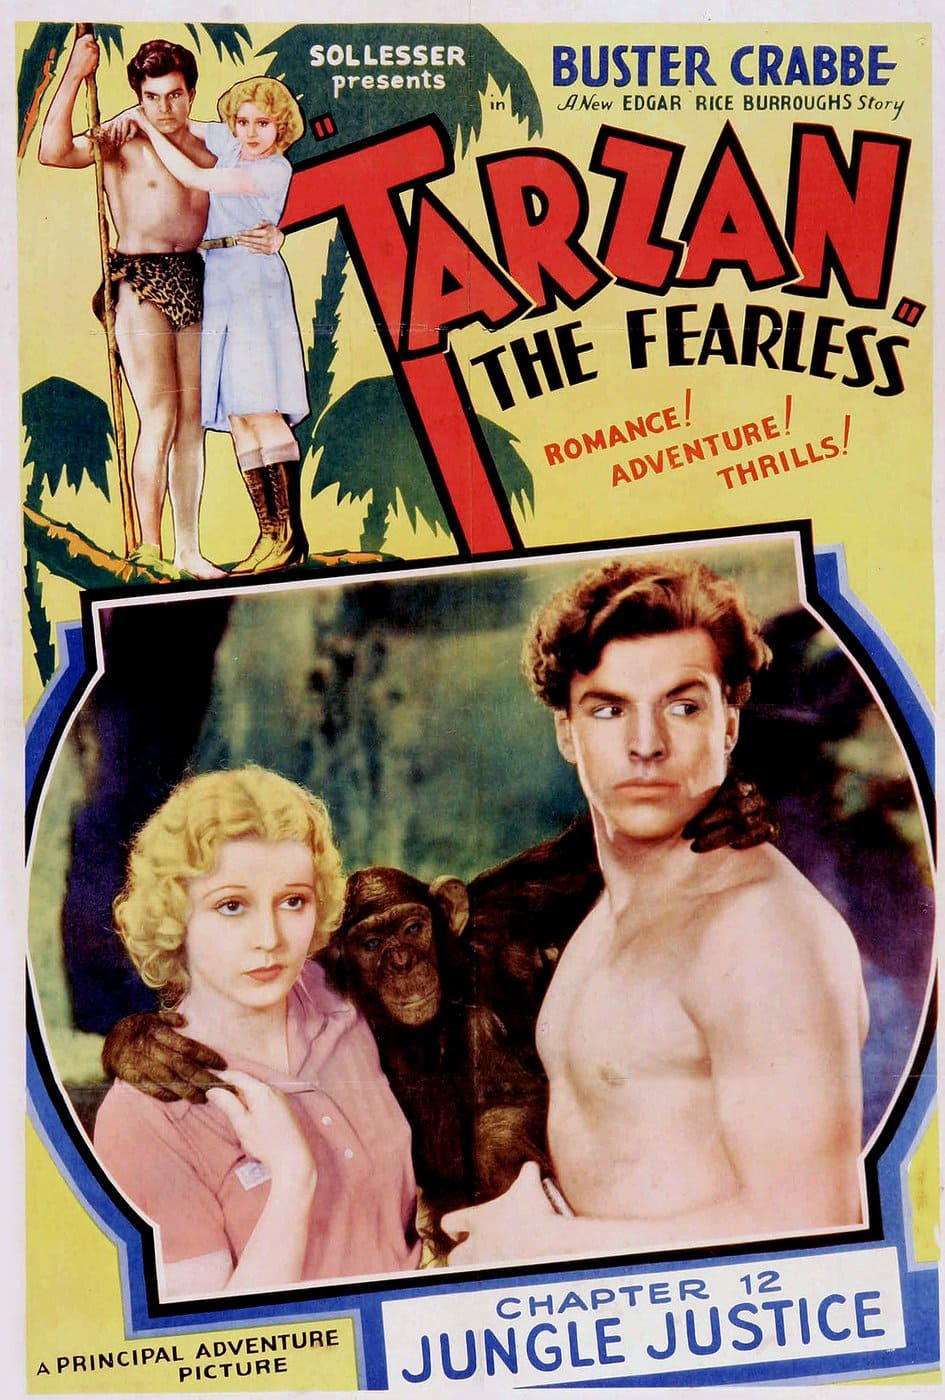 Vintage movie Tarzan the Fearless, starring Buster Crabbe